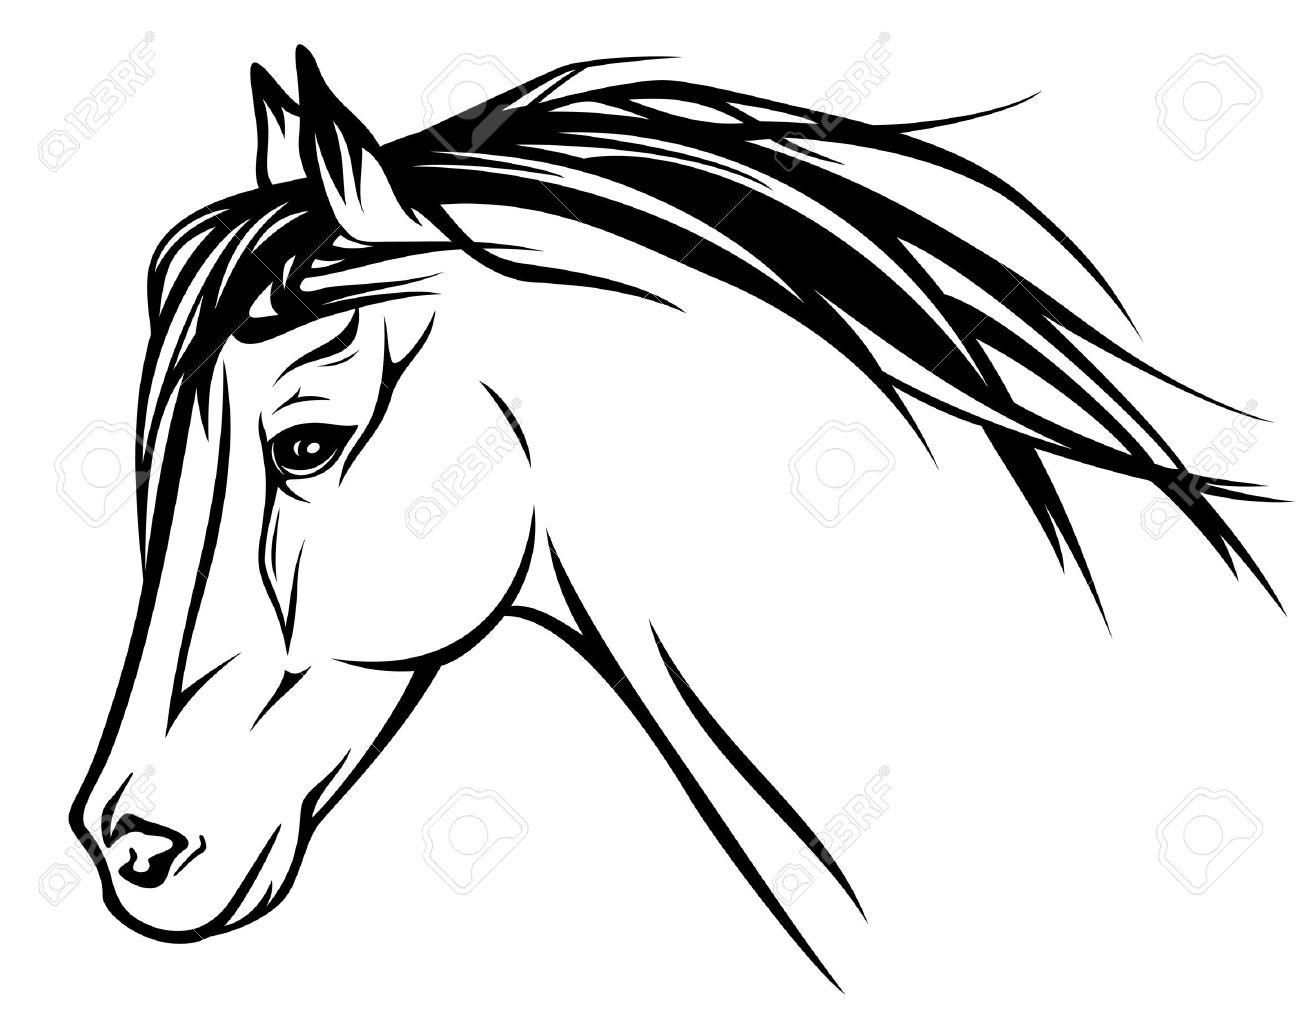 outline of a horse head